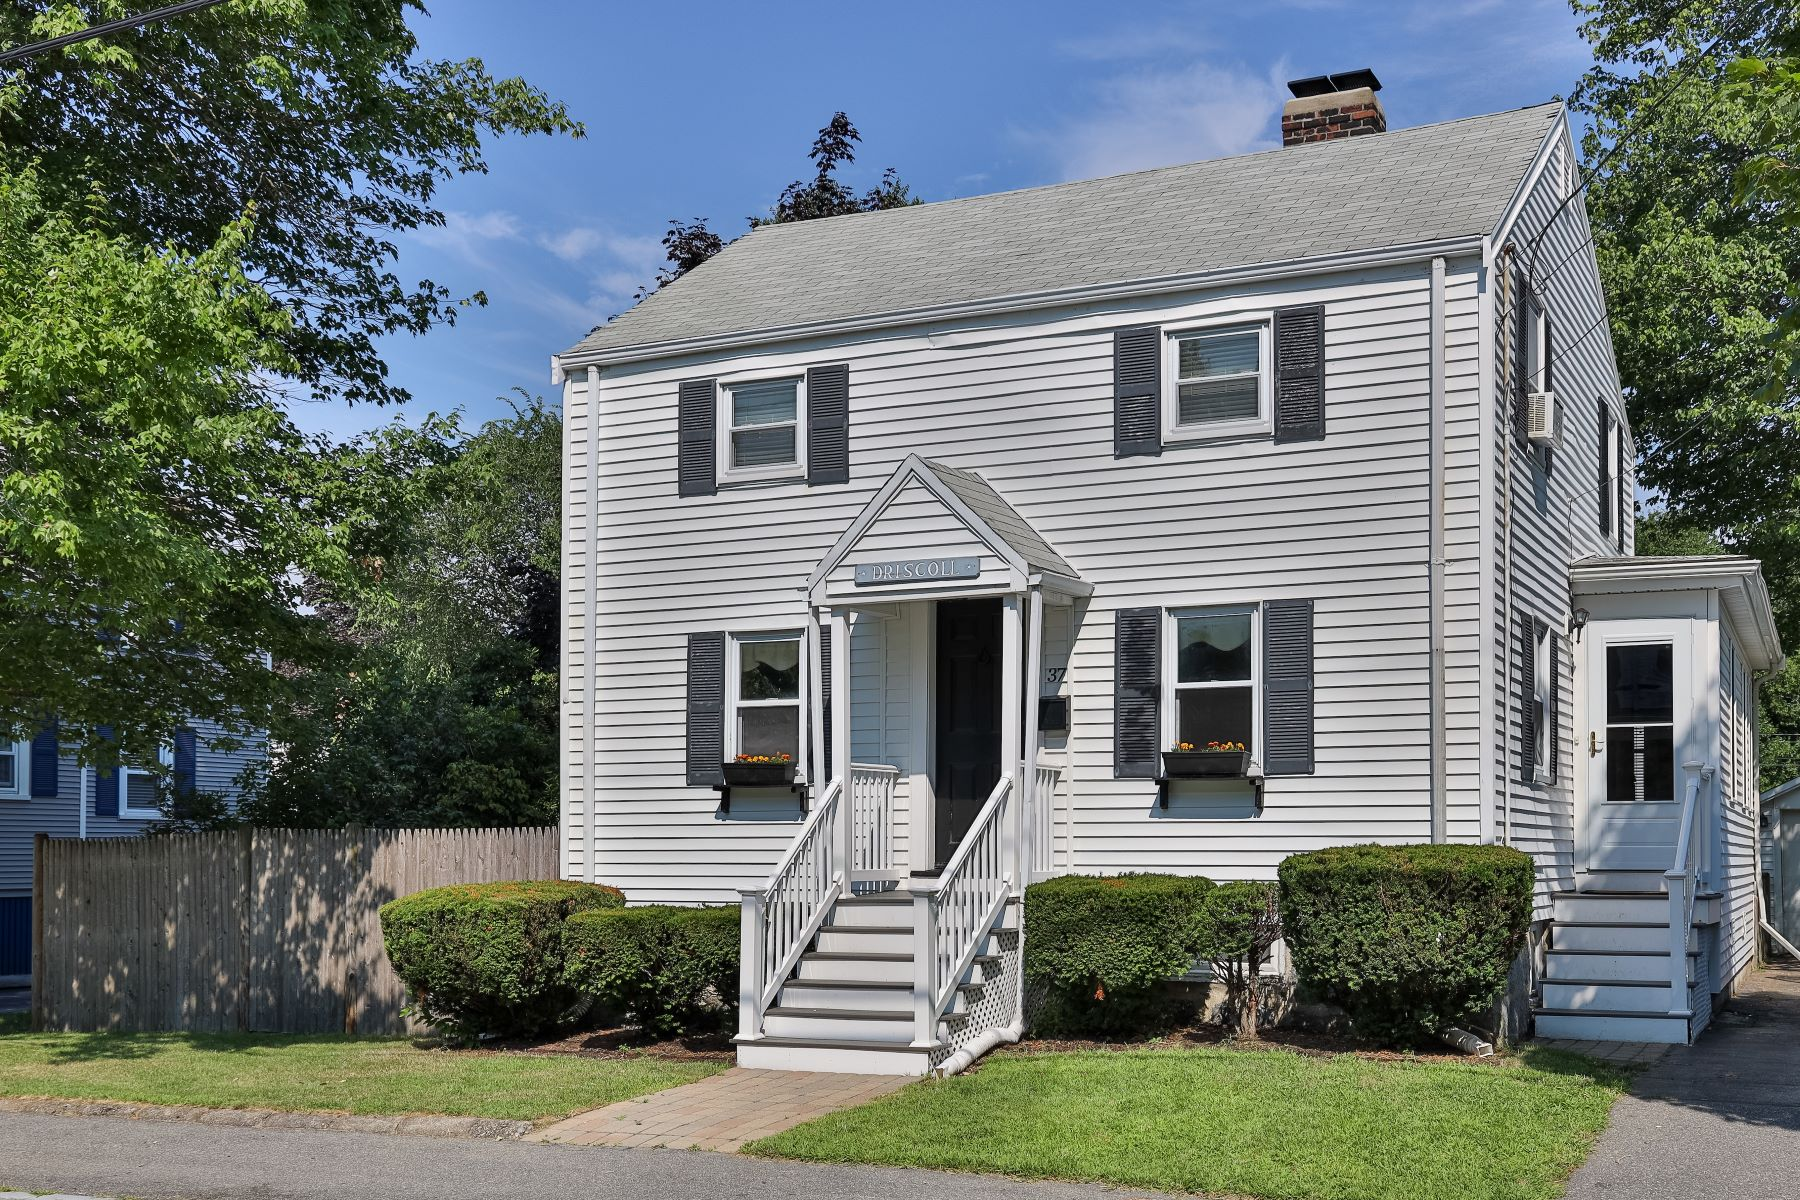 Single Family Homes for Sale at 37 Staten Road, Braintree 37 Staten Road Braintree, Massachusetts 02184 United States